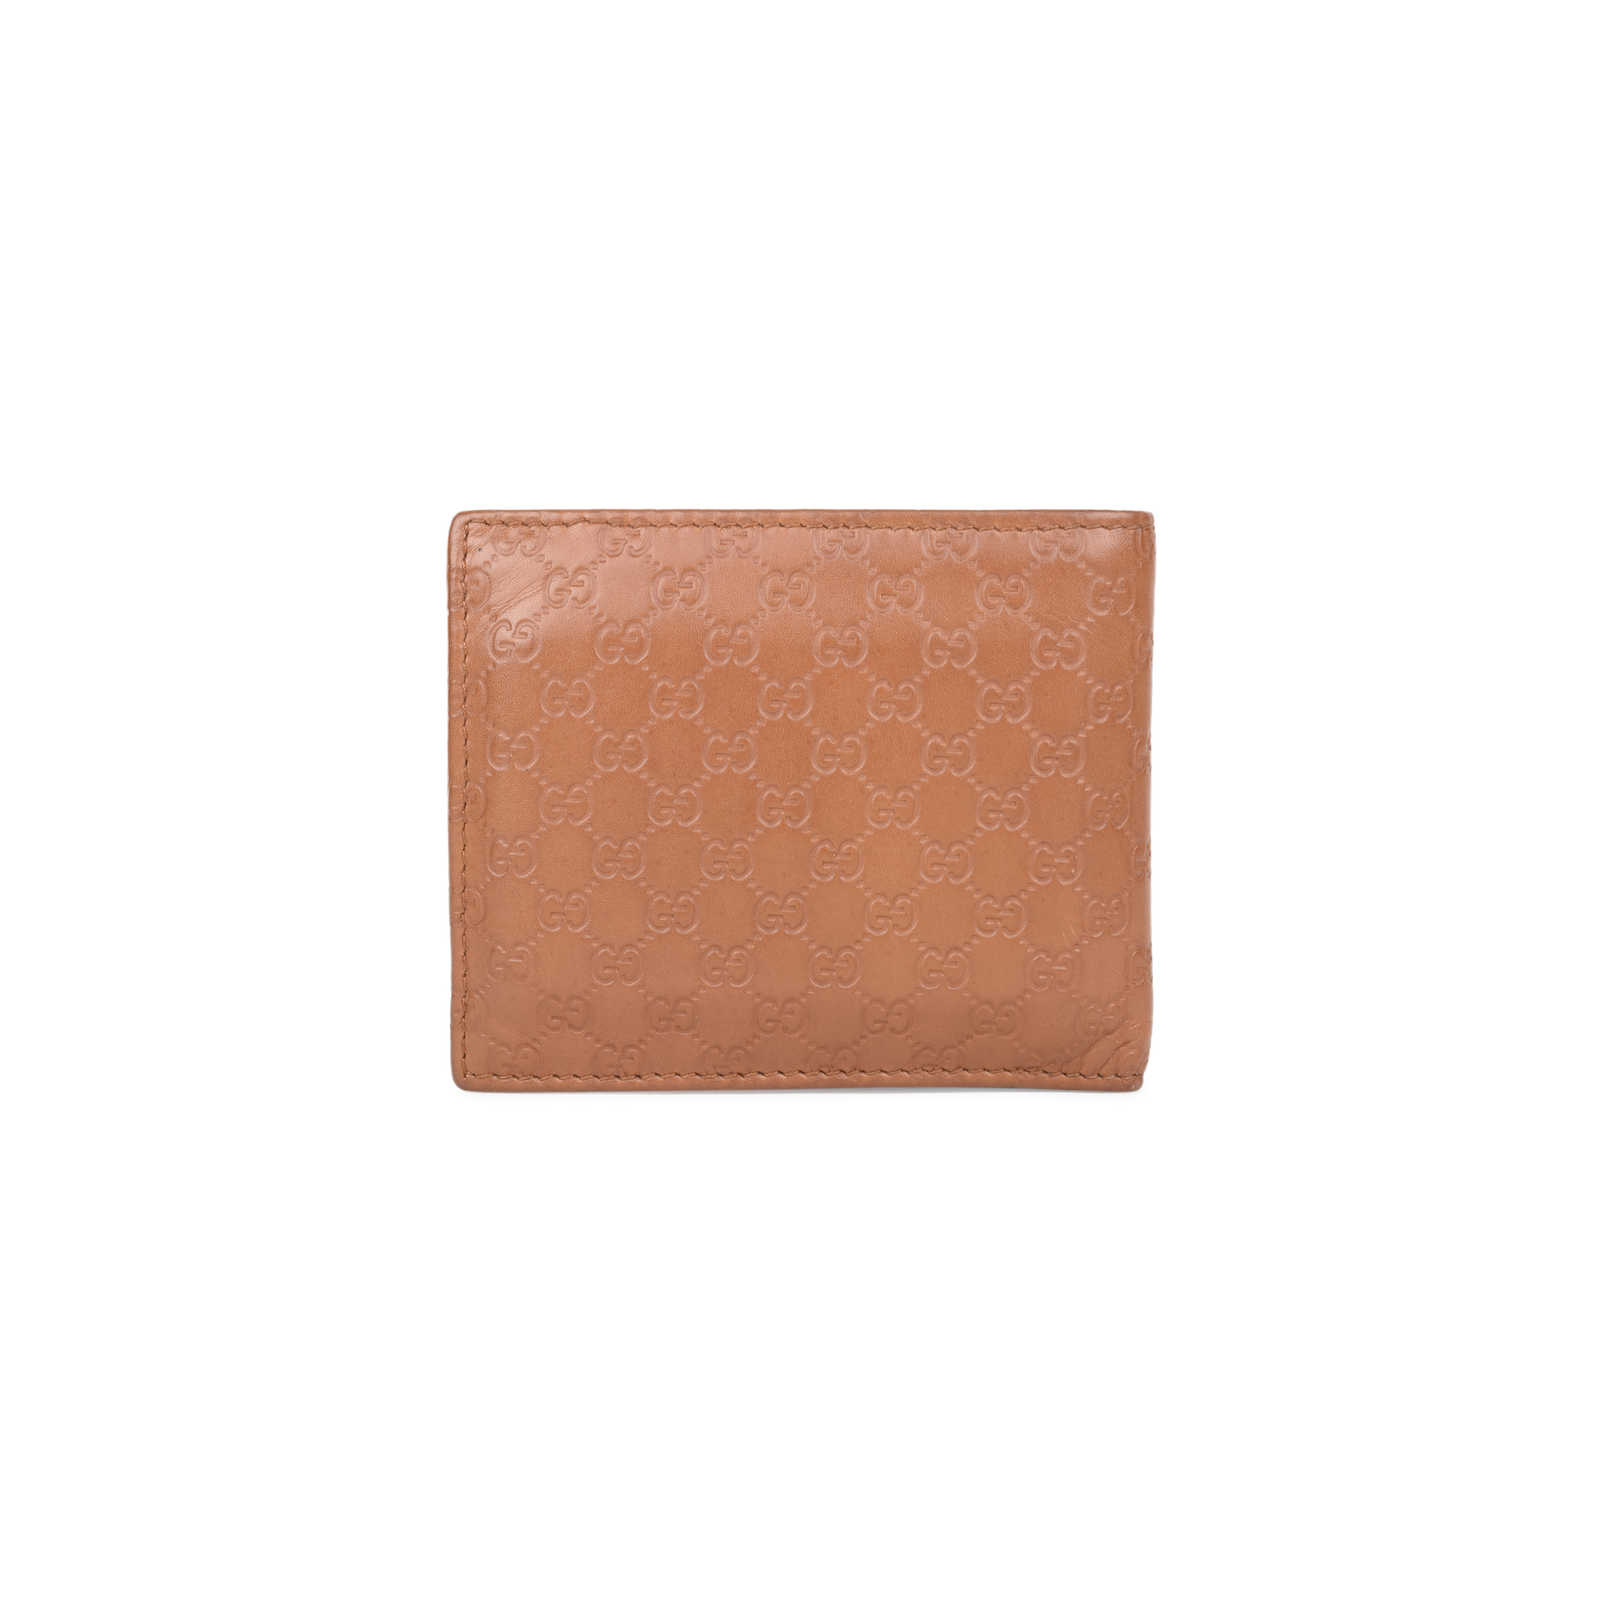 1b4ae7f1b1c ... Authentic Second Hand Gucci Microguccissima Leather Wallet  (PSS-394-00023) - Thumbnail ...